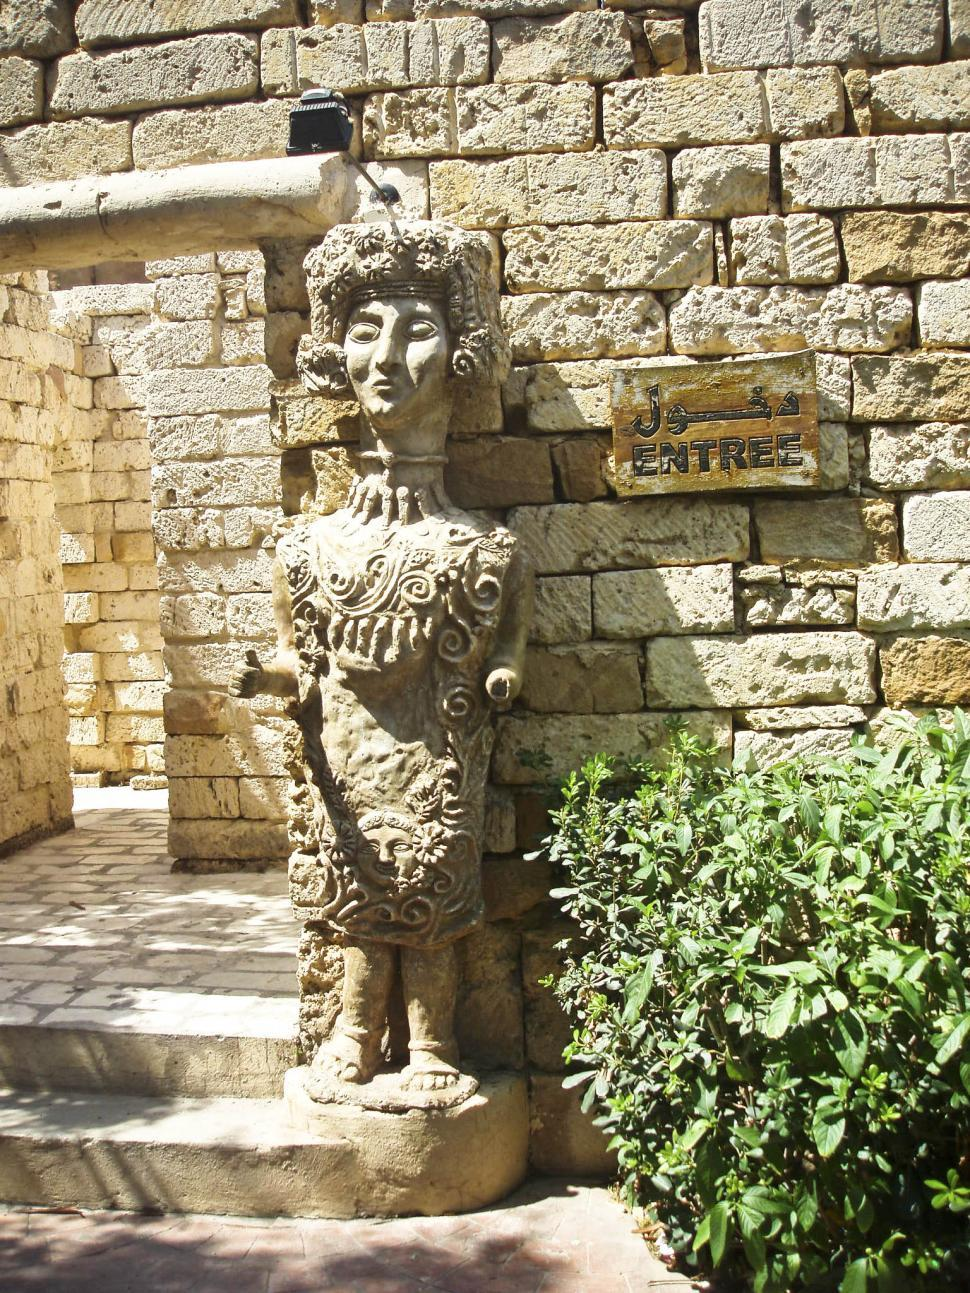 Download Free Stock HD Photo of old stone sculpture Online